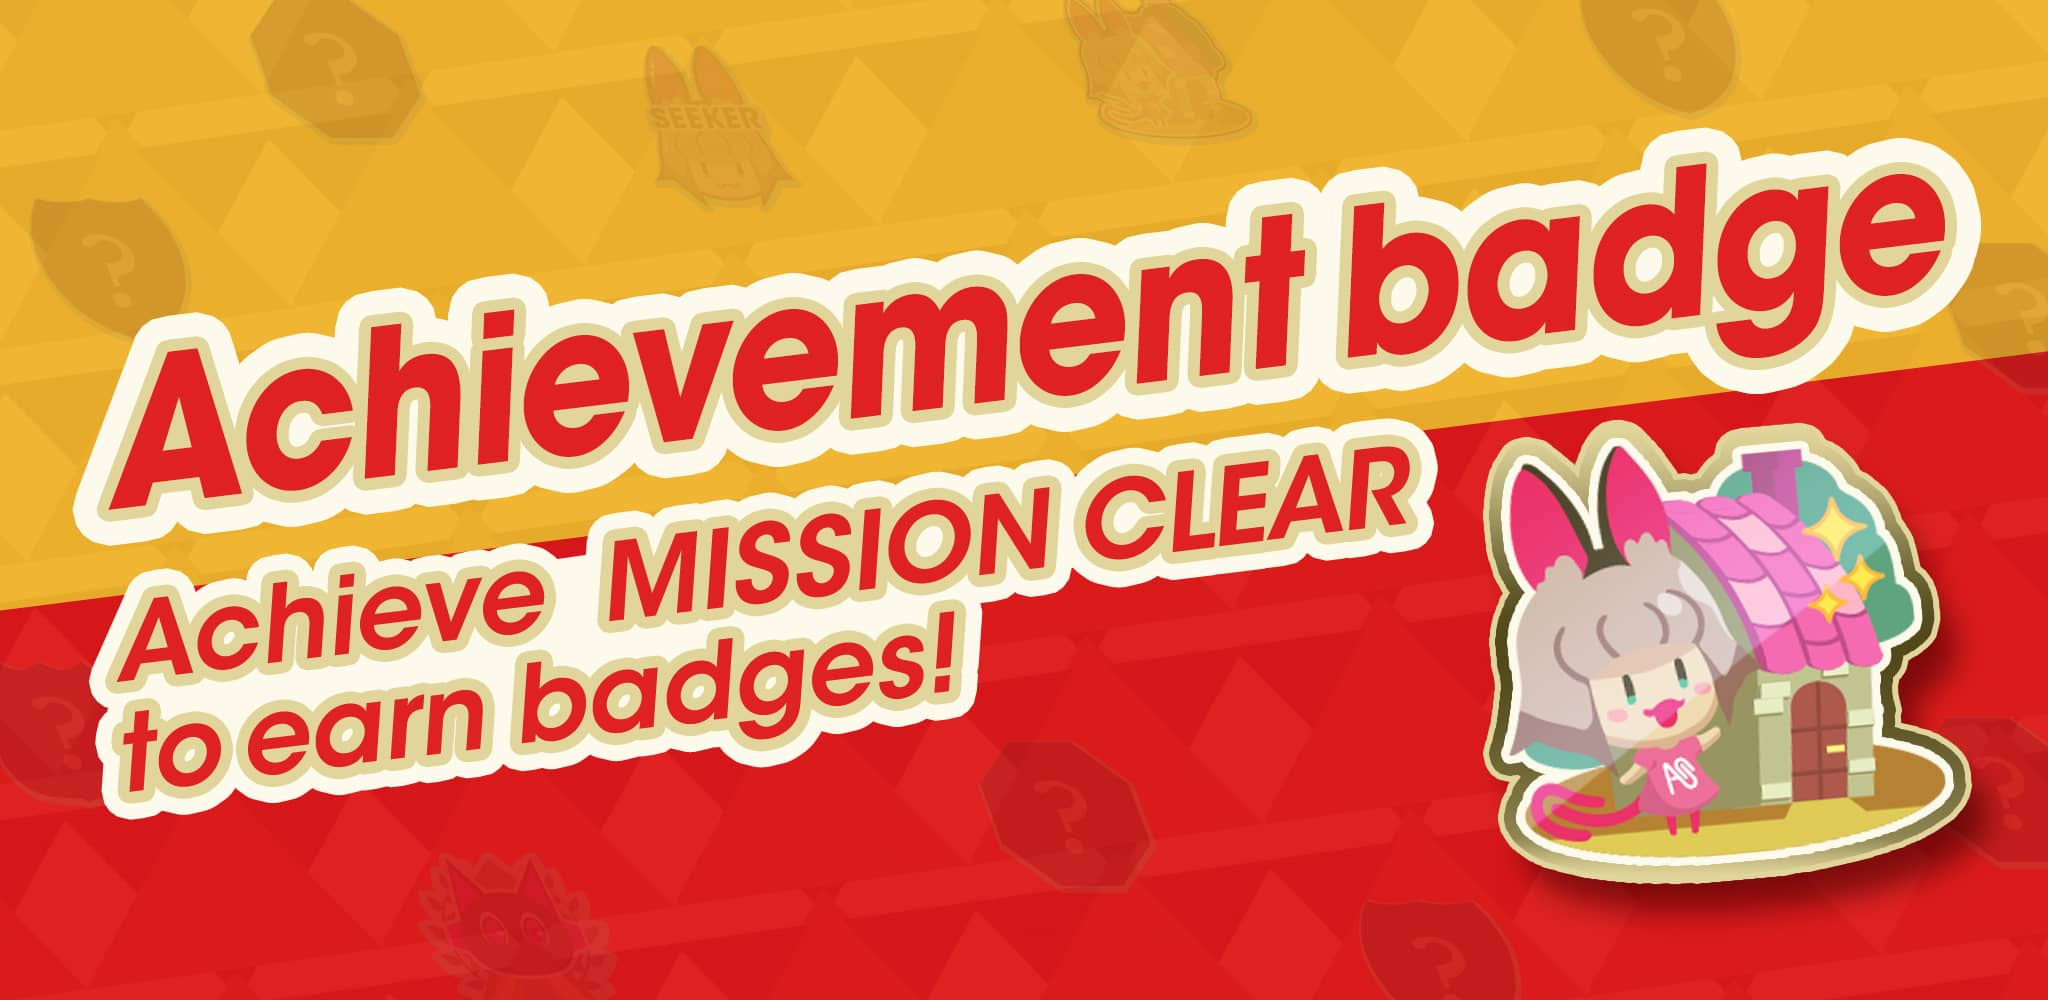 Achievement badge - Achieve MISSION CLEAR to earn badges!